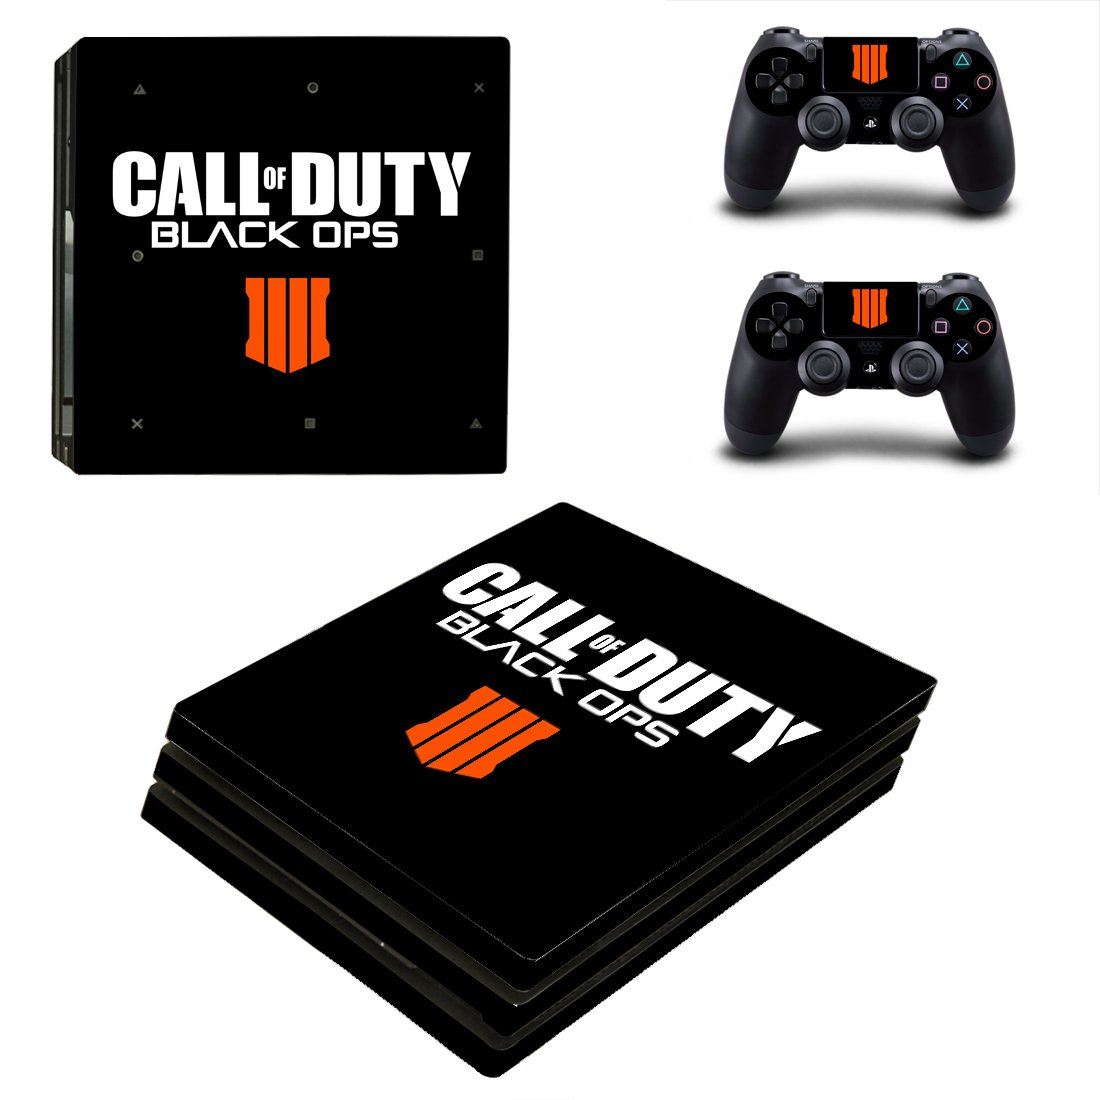 Call Of Duty Black OPS 4 PS4 Pro Skin Sticker Decals PS4 Console And Controllers Protect Your PS4